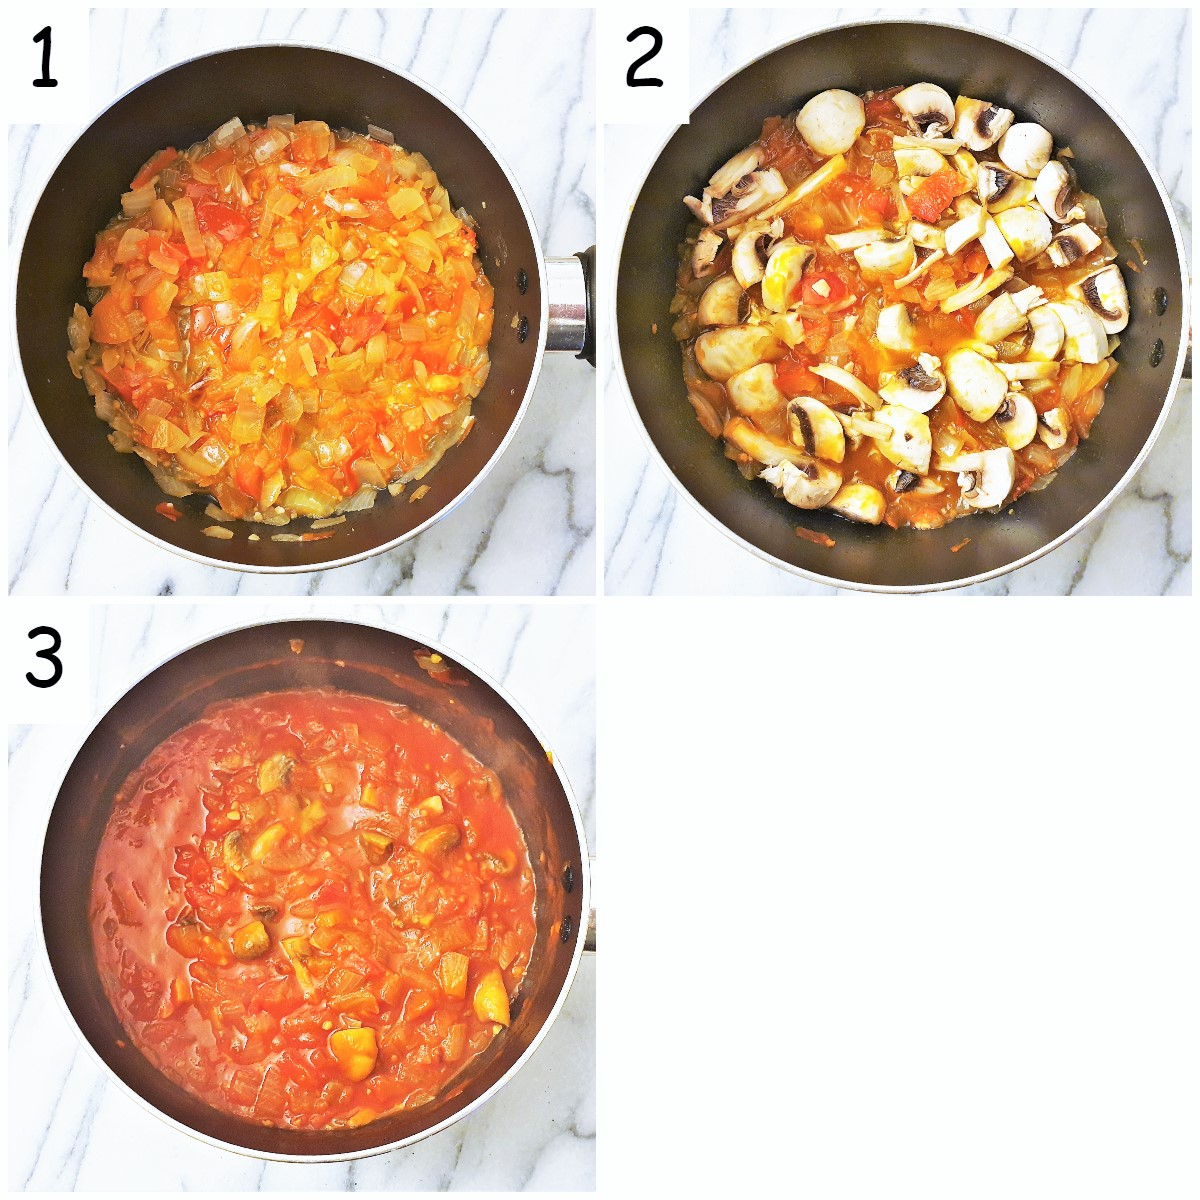 Steps for making the sauce.